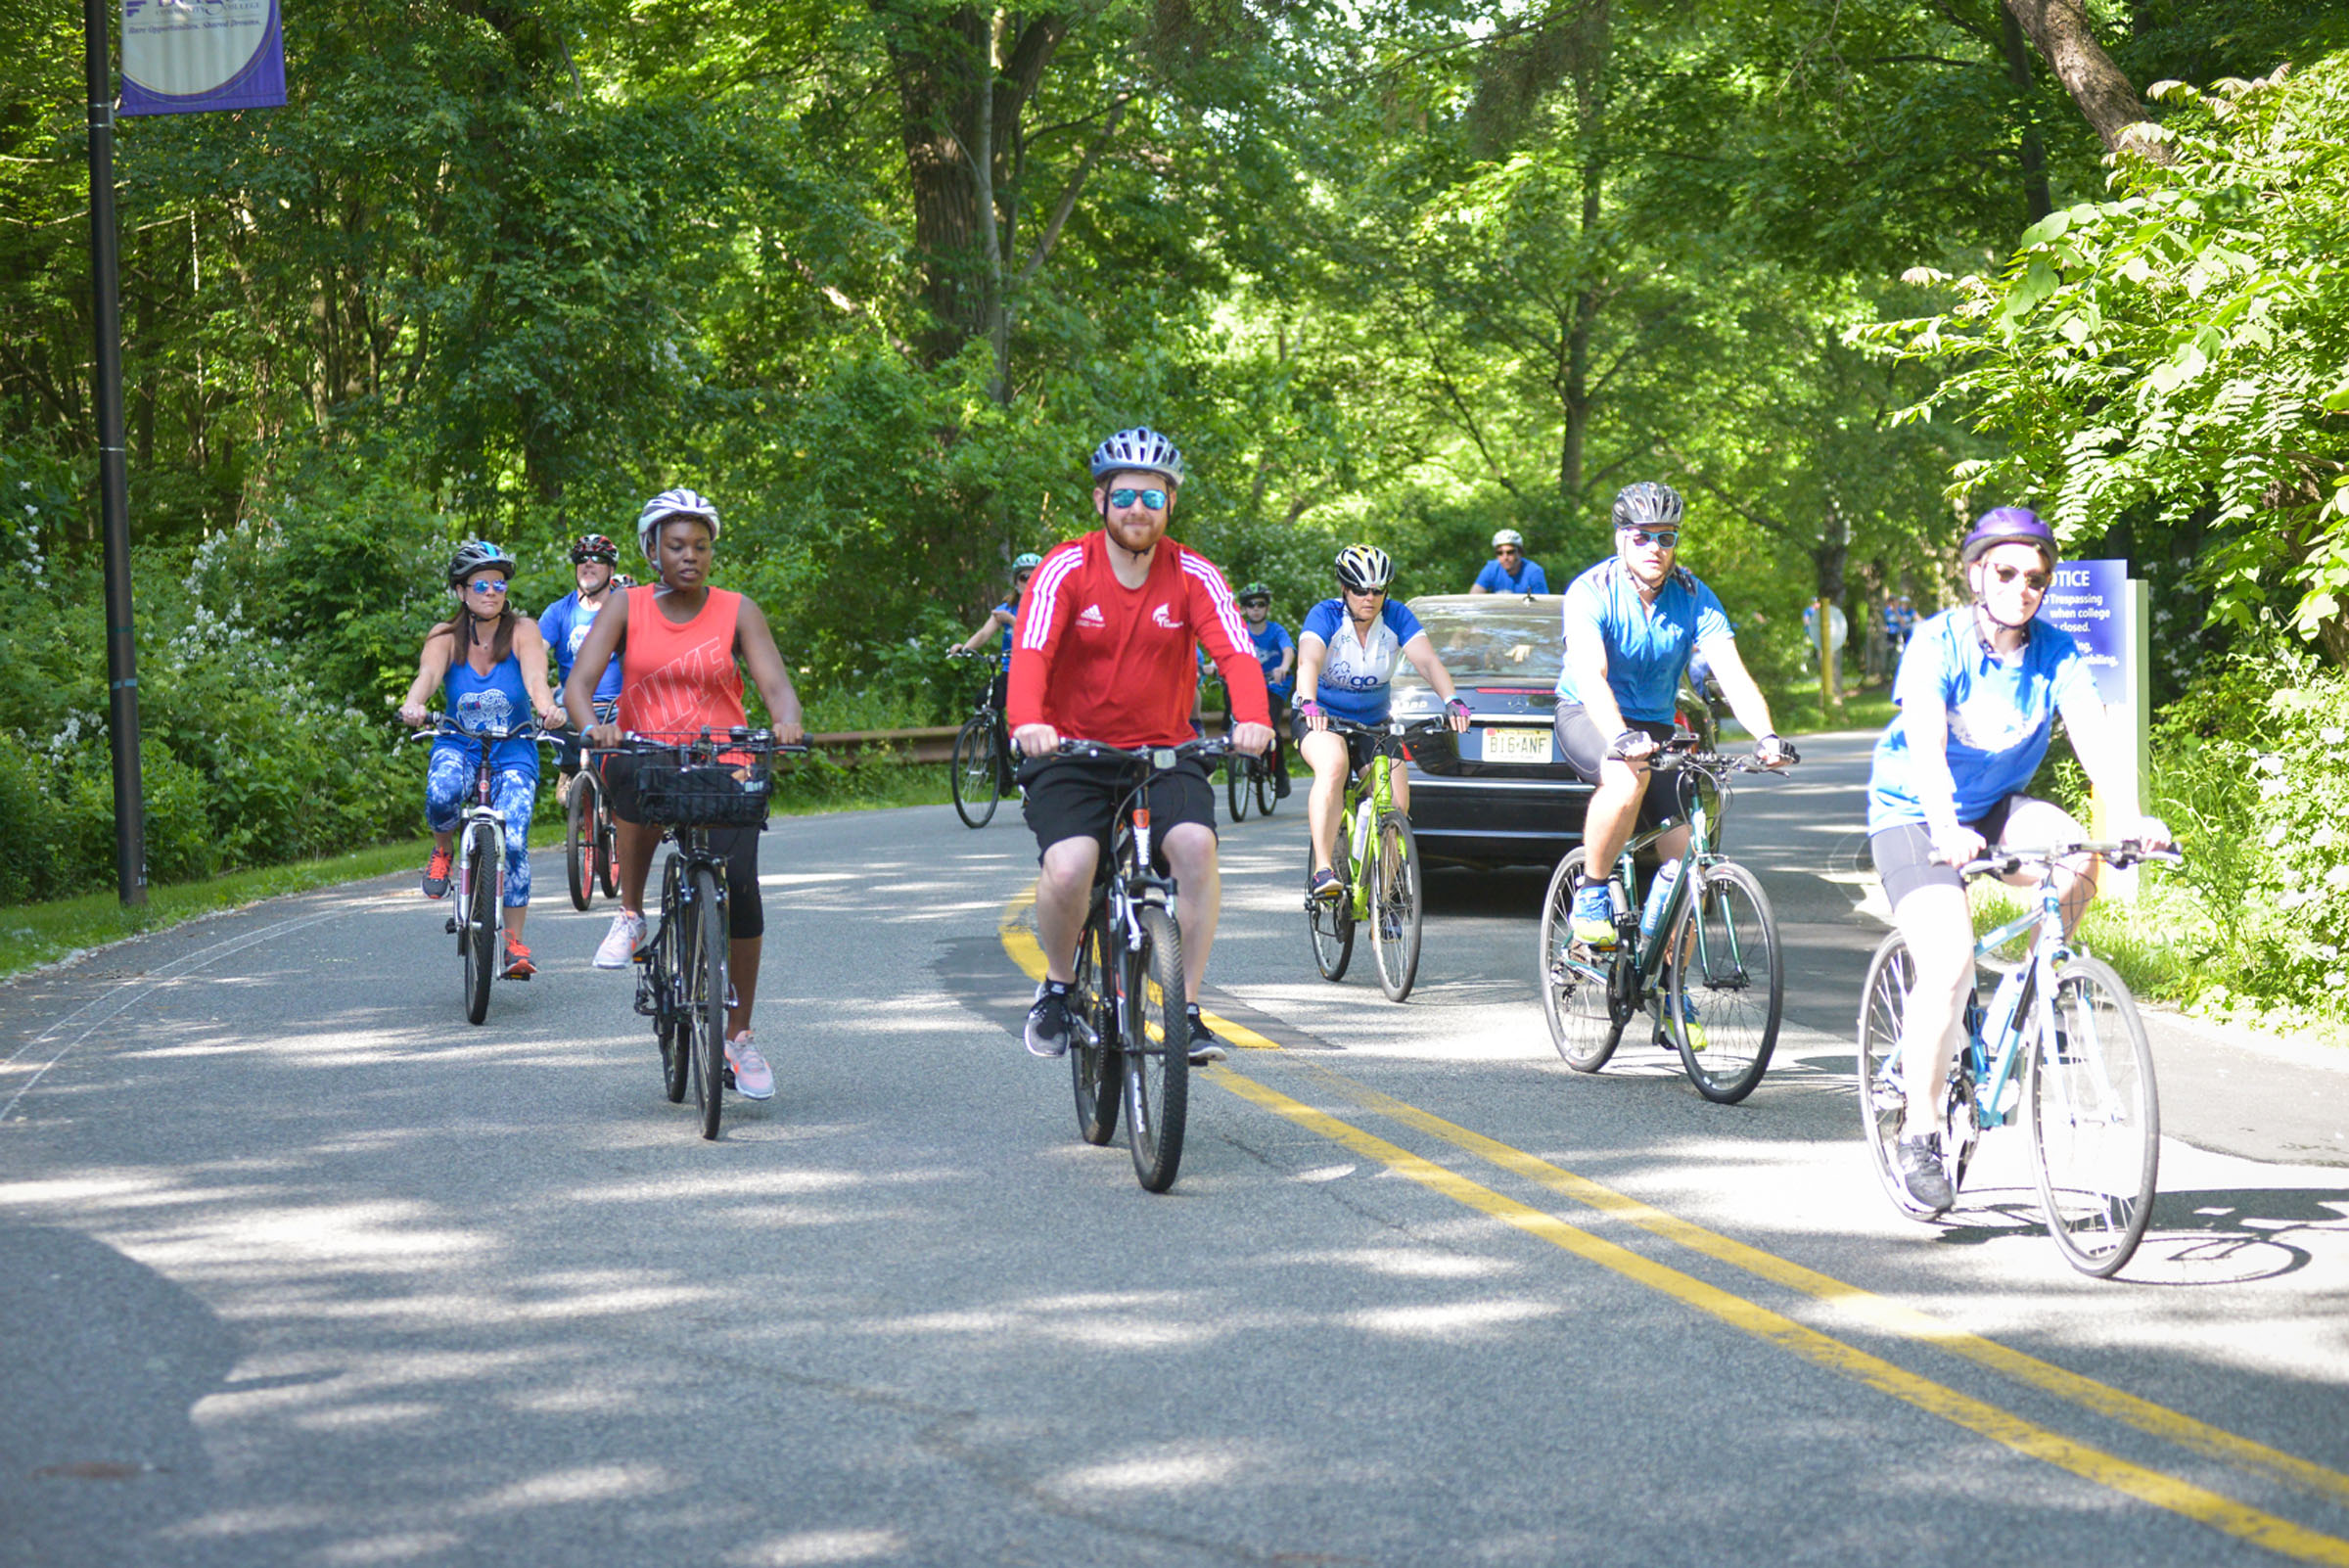 2017-06-04 GTD4A Charity Bike Ride - BCC - Paramus NJ-1980.jpg